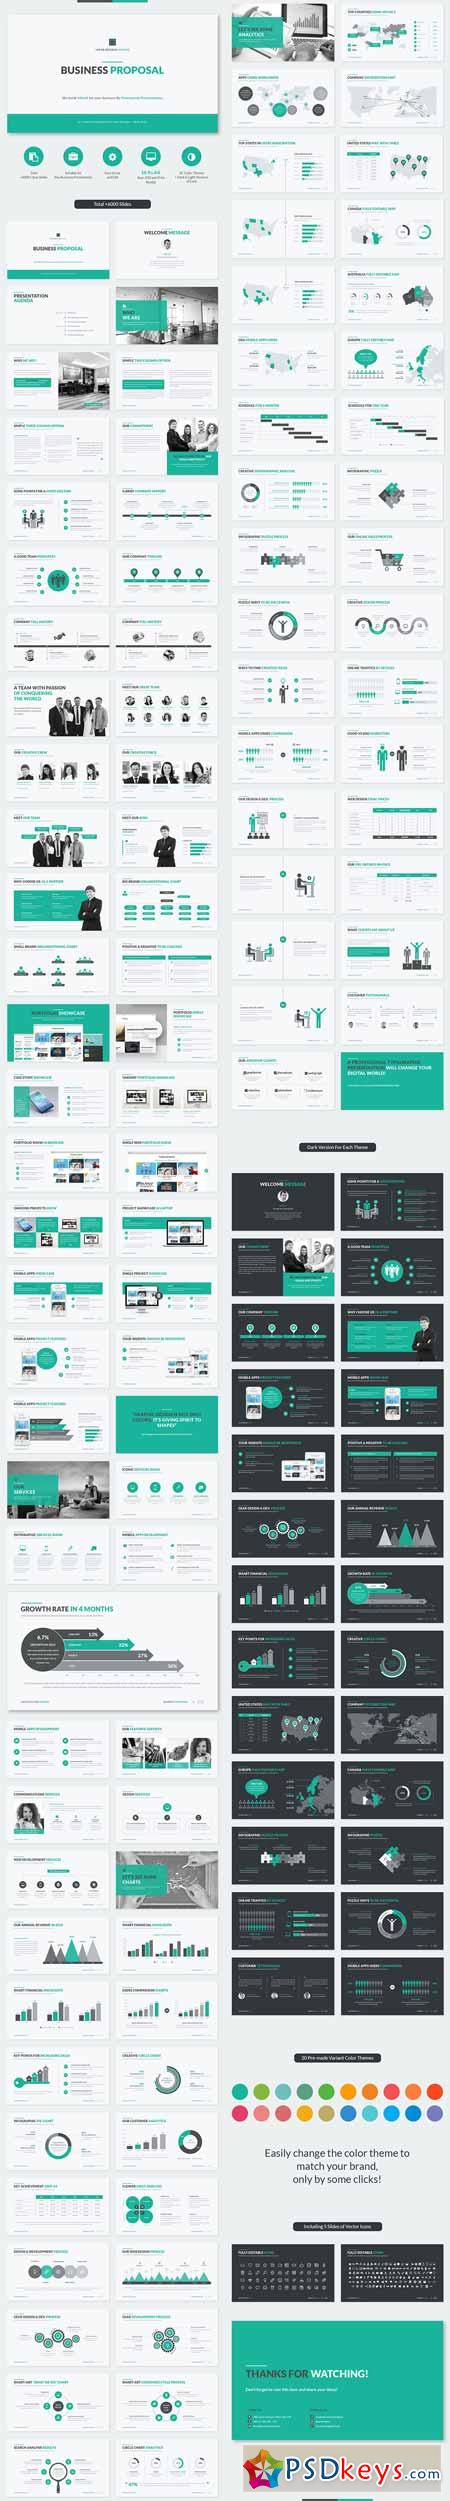 Business Proposal Powerpoint Template 11833931 Free Download